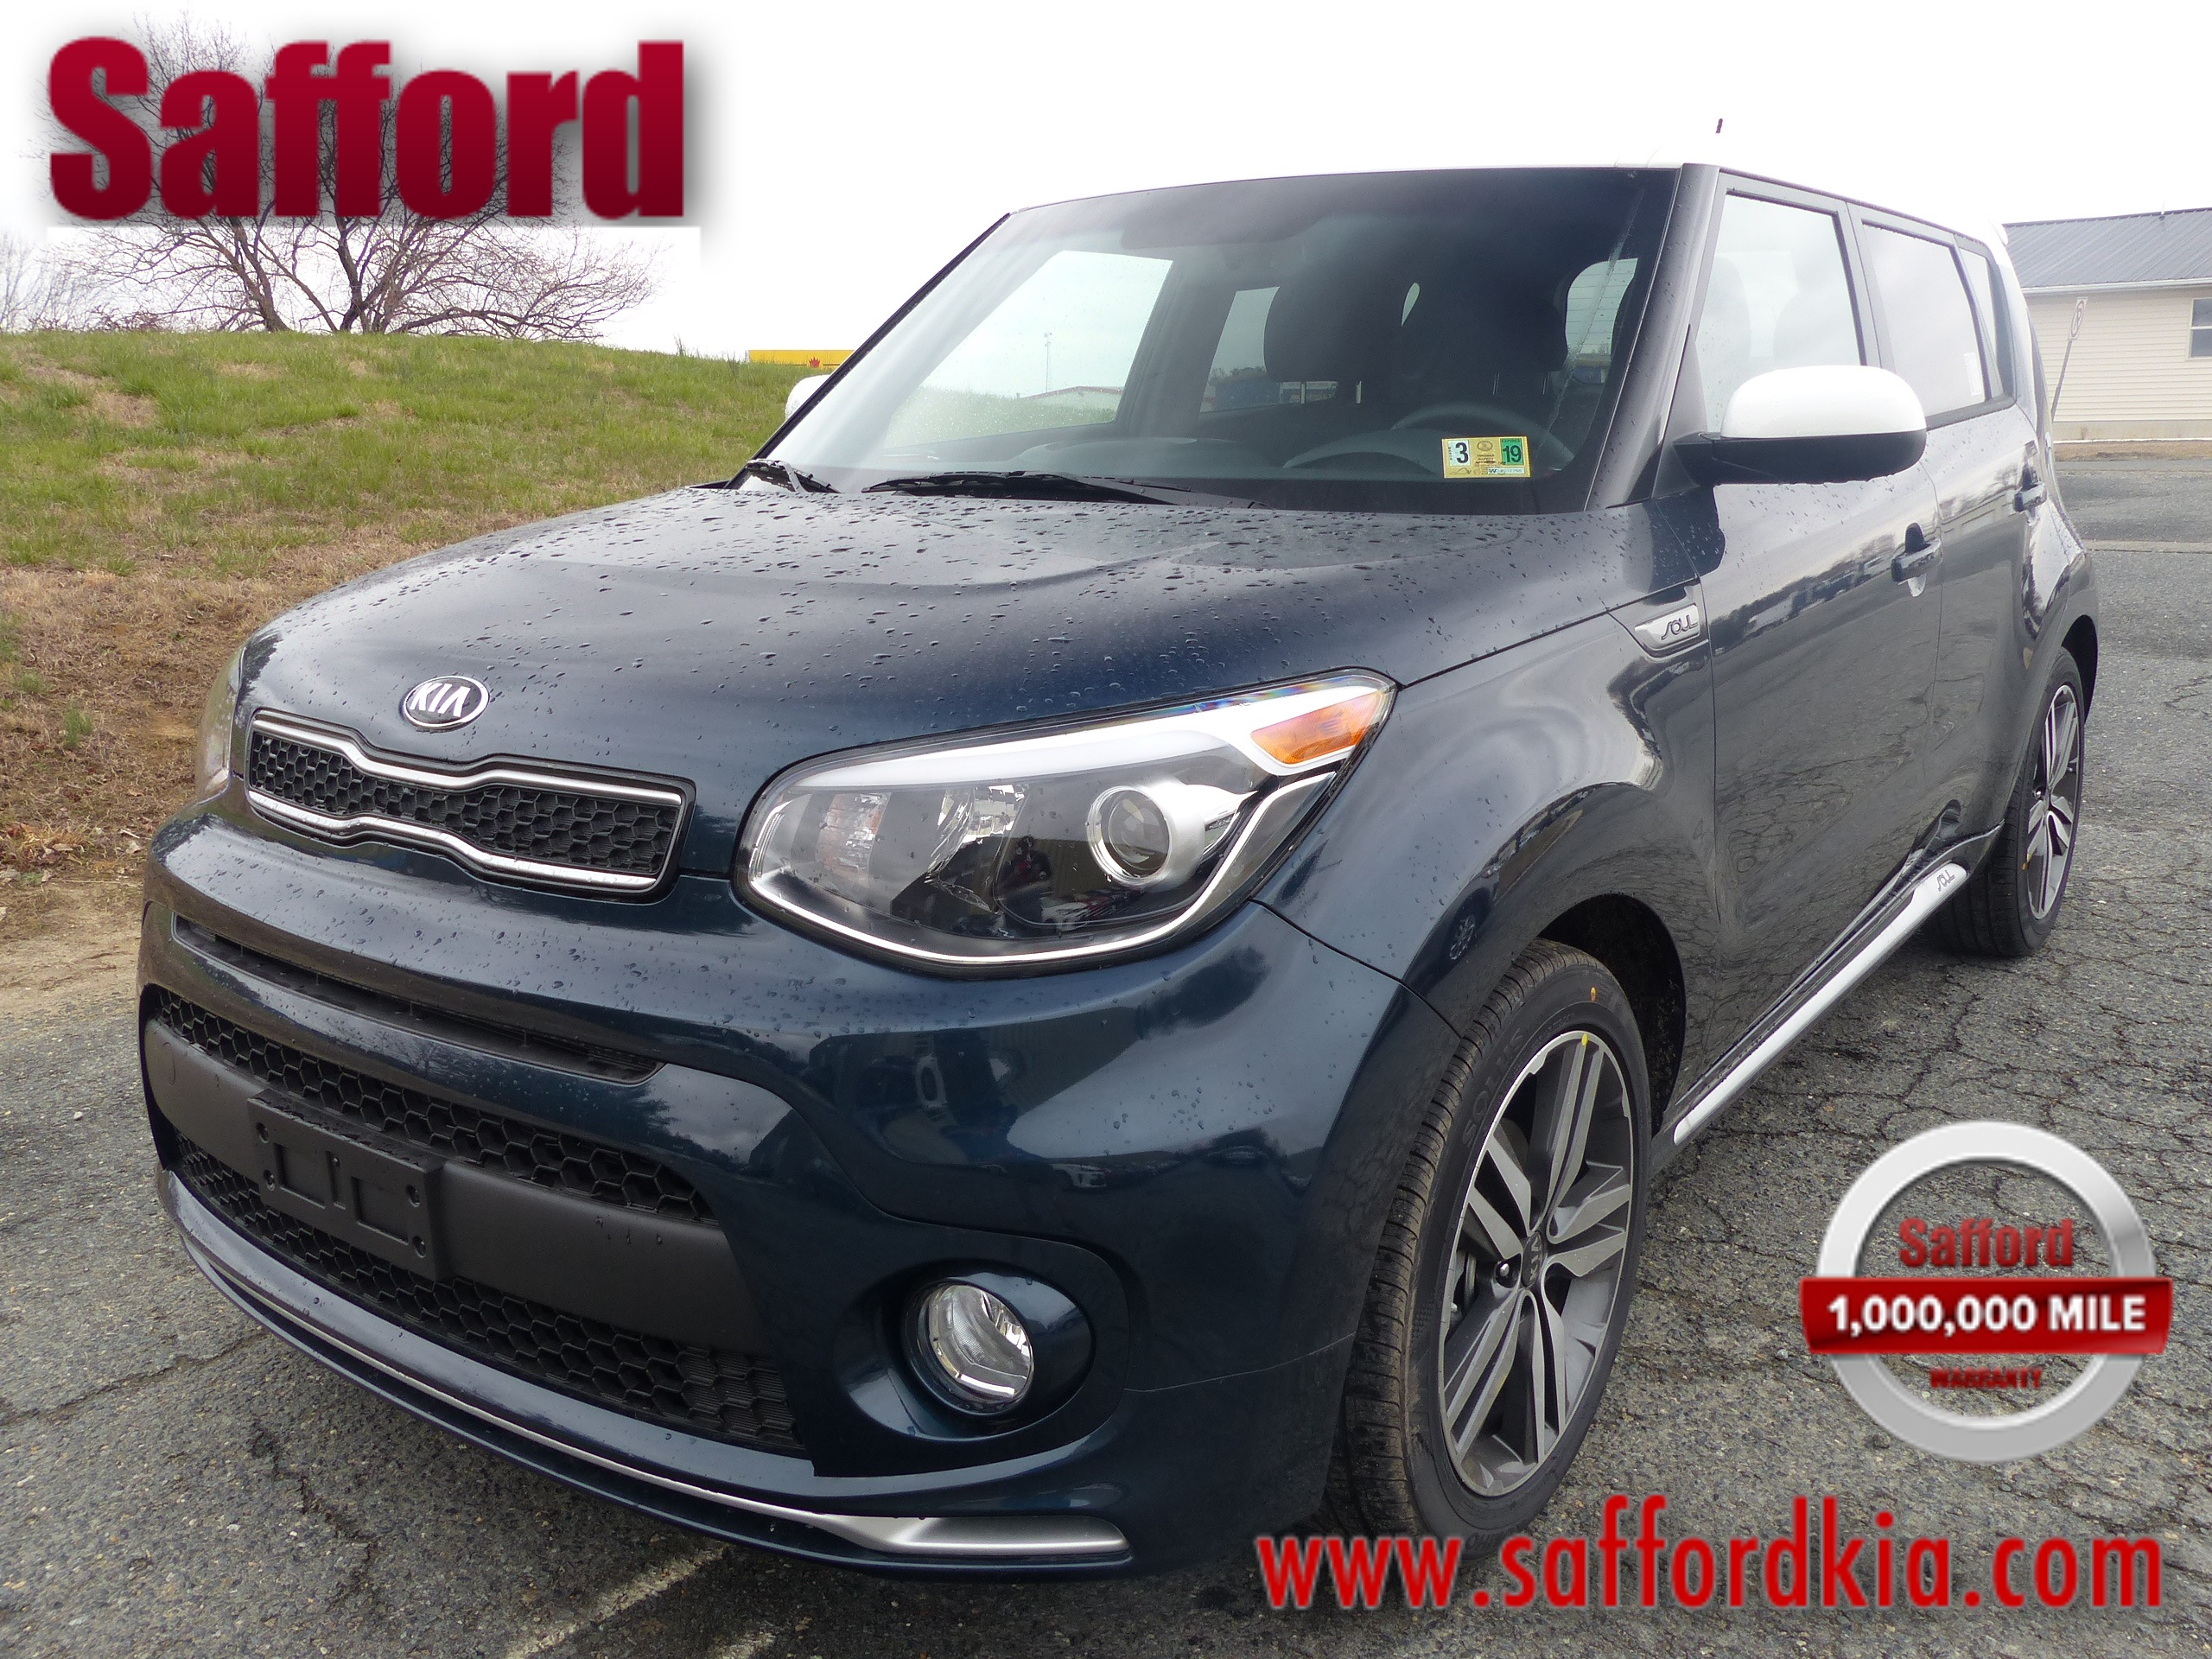 new 2018 kia soul 4dr car in fredericksburg j7590419 safford kia of fredericksburg. Black Bedroom Furniture Sets. Home Design Ideas